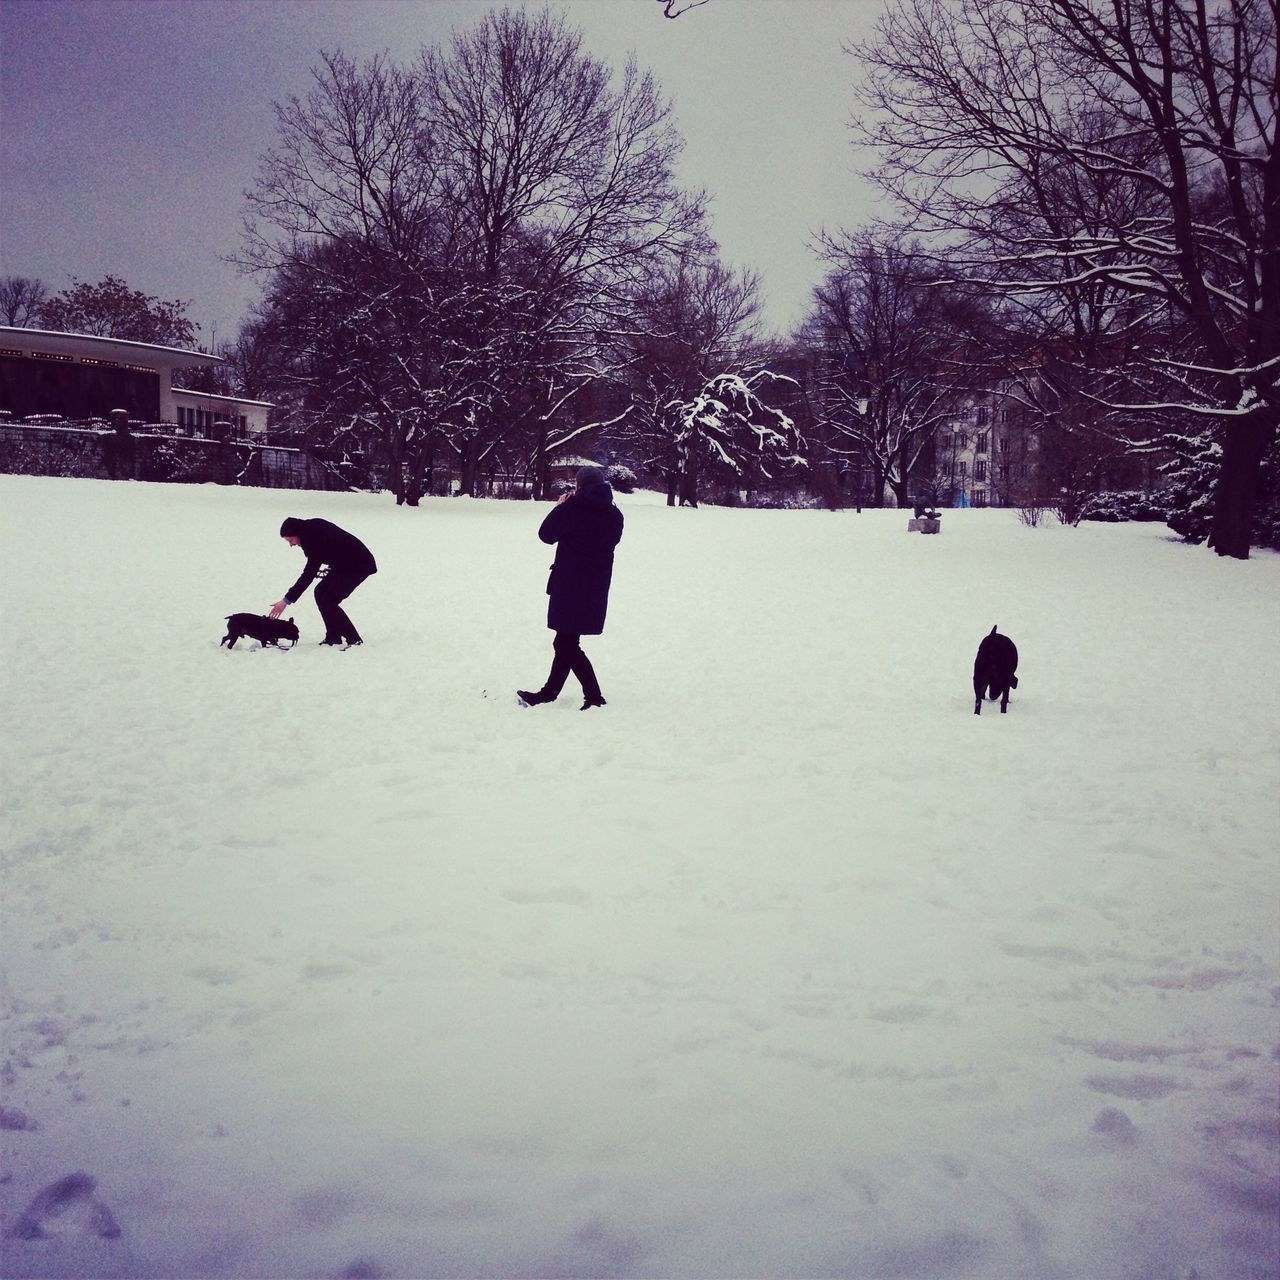 People Playing With Dogs On Snow Covered Field